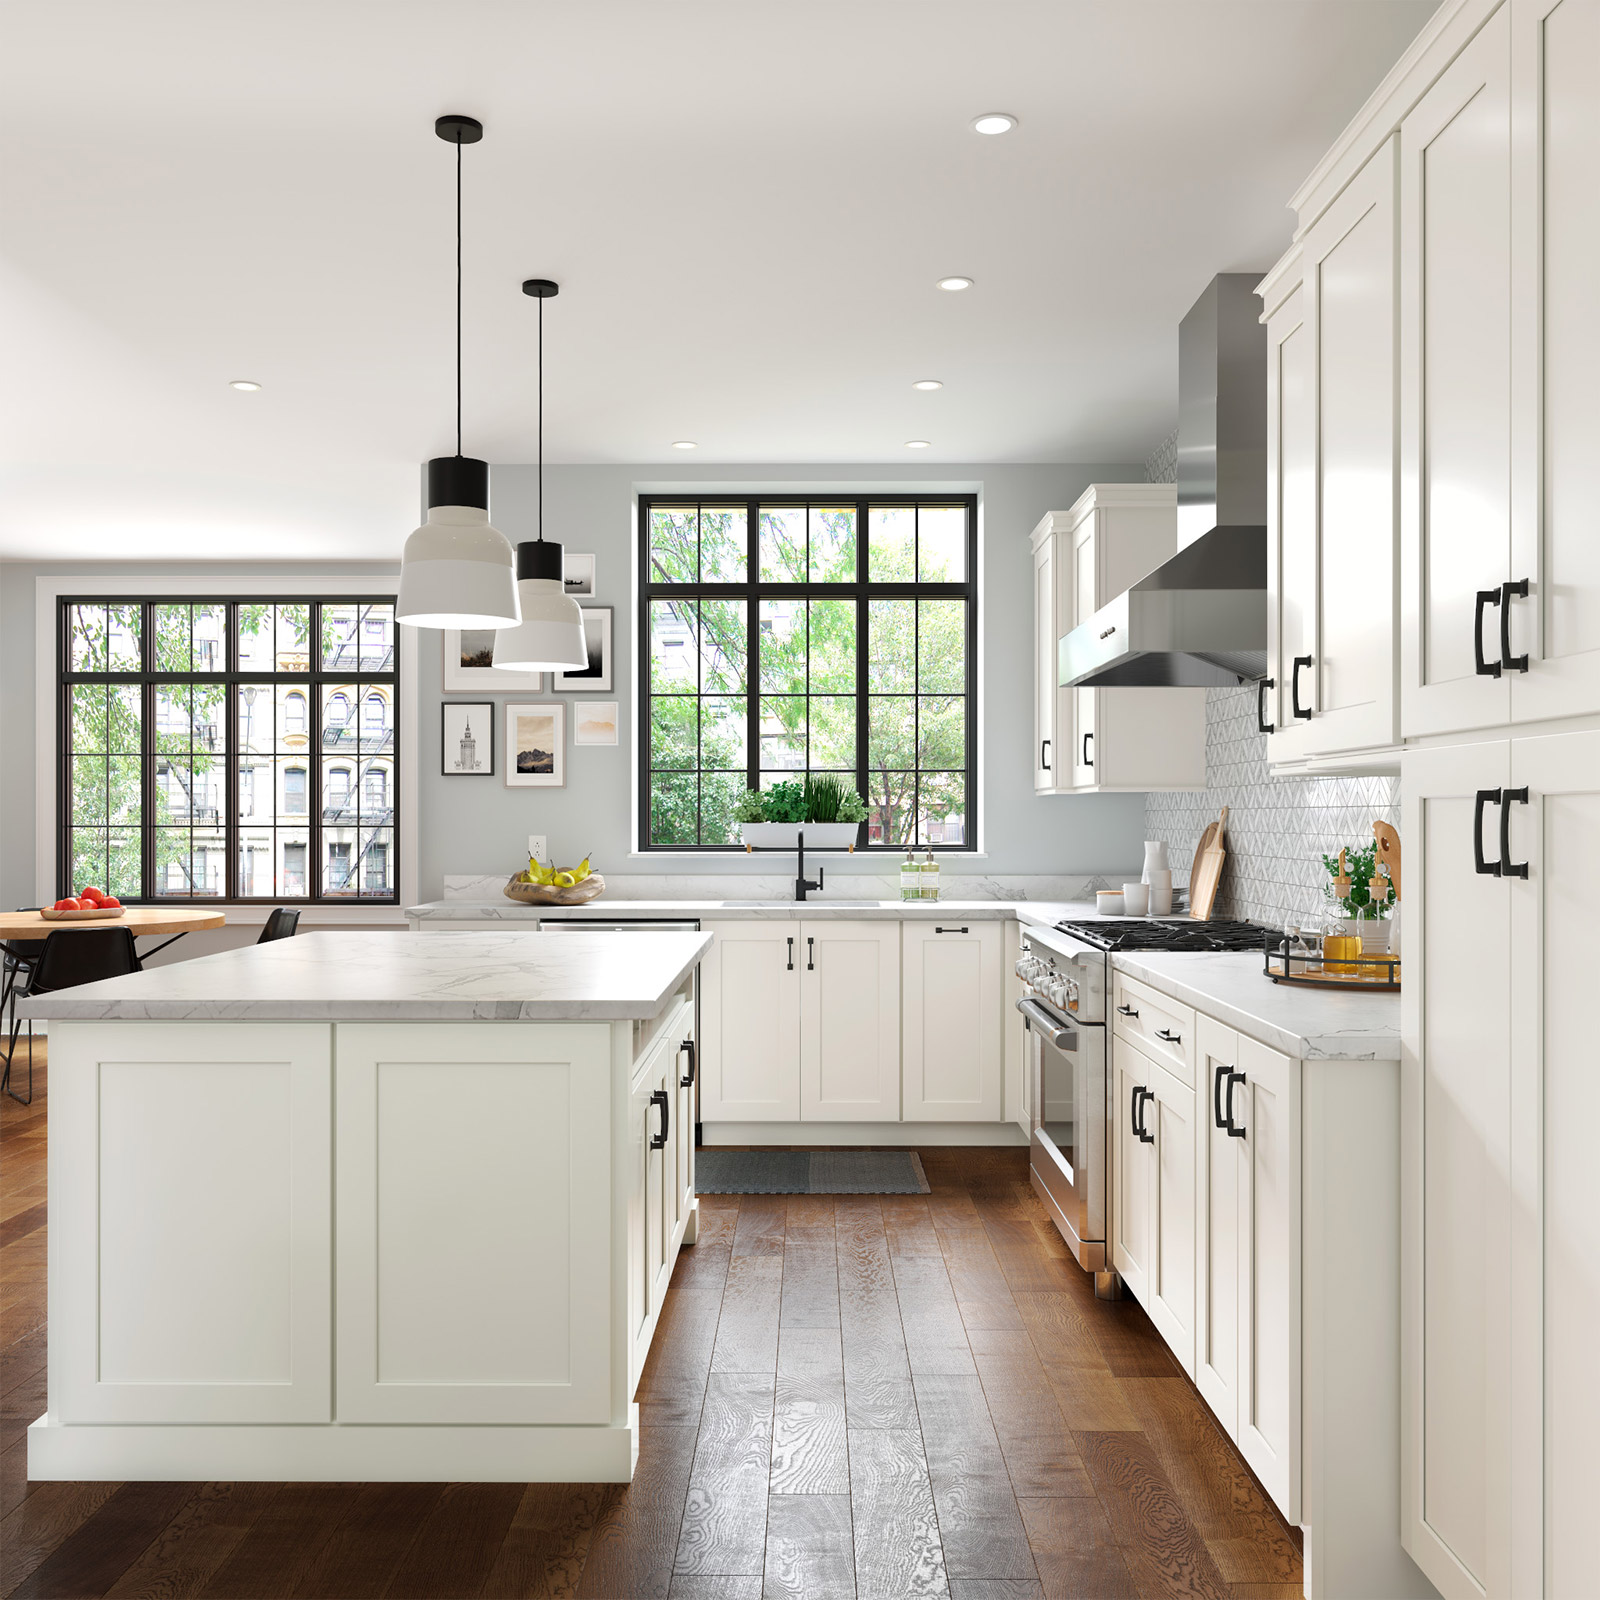 allen + roth Cabinetry Styles